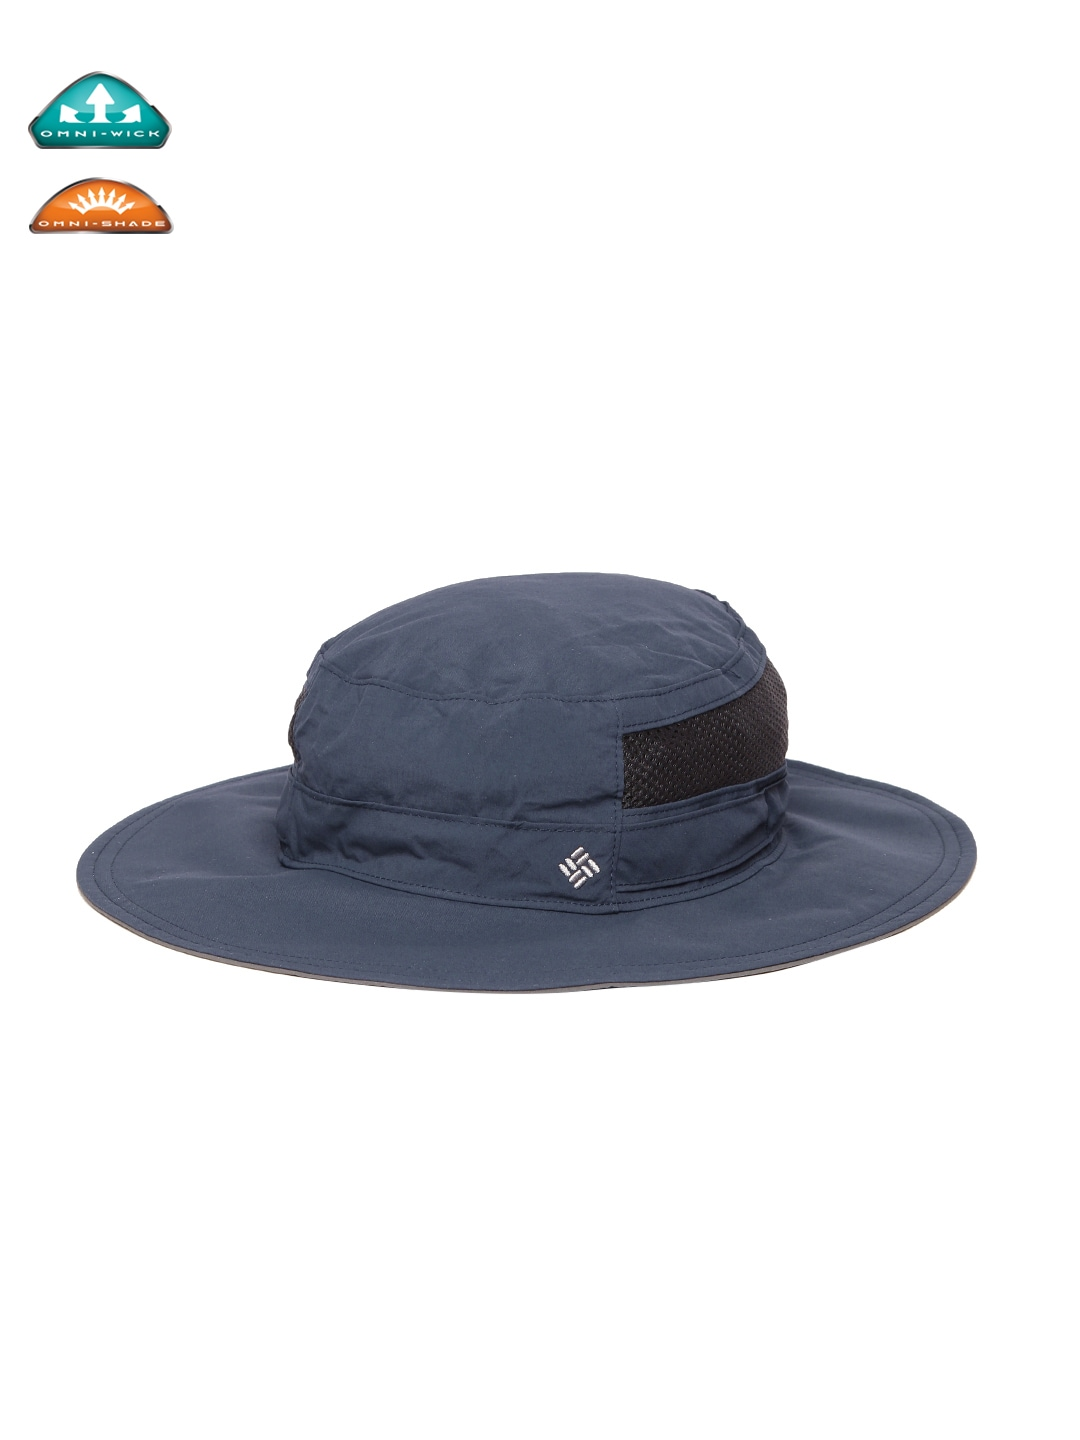 452fc2d49b769 Women Columbia Headwear - Buy Women Columbia Headwear online in India